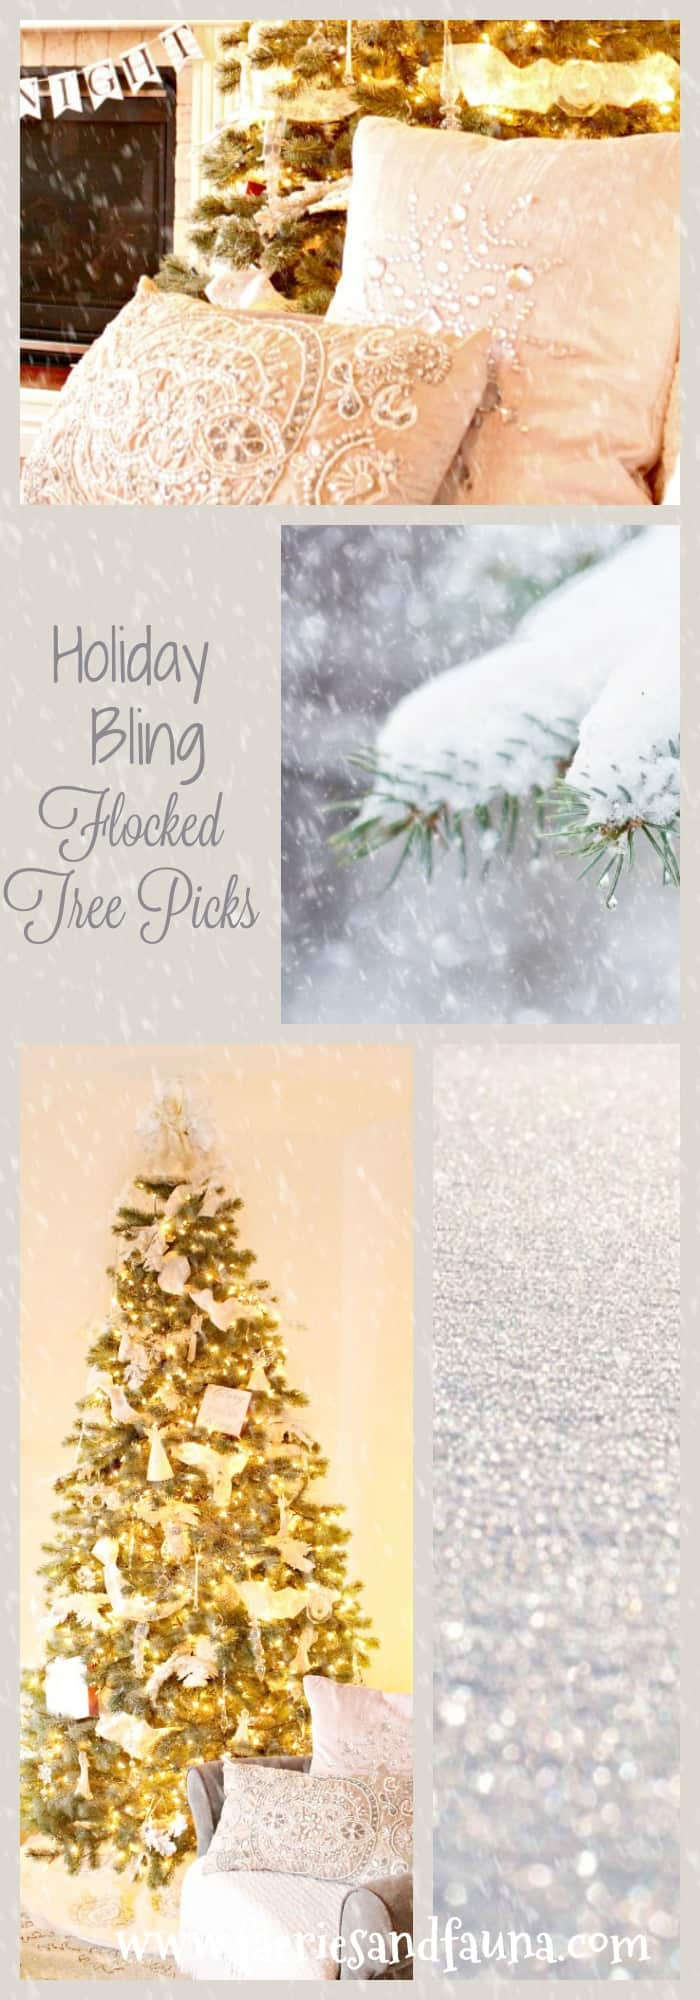 pinterest-holiday-bling